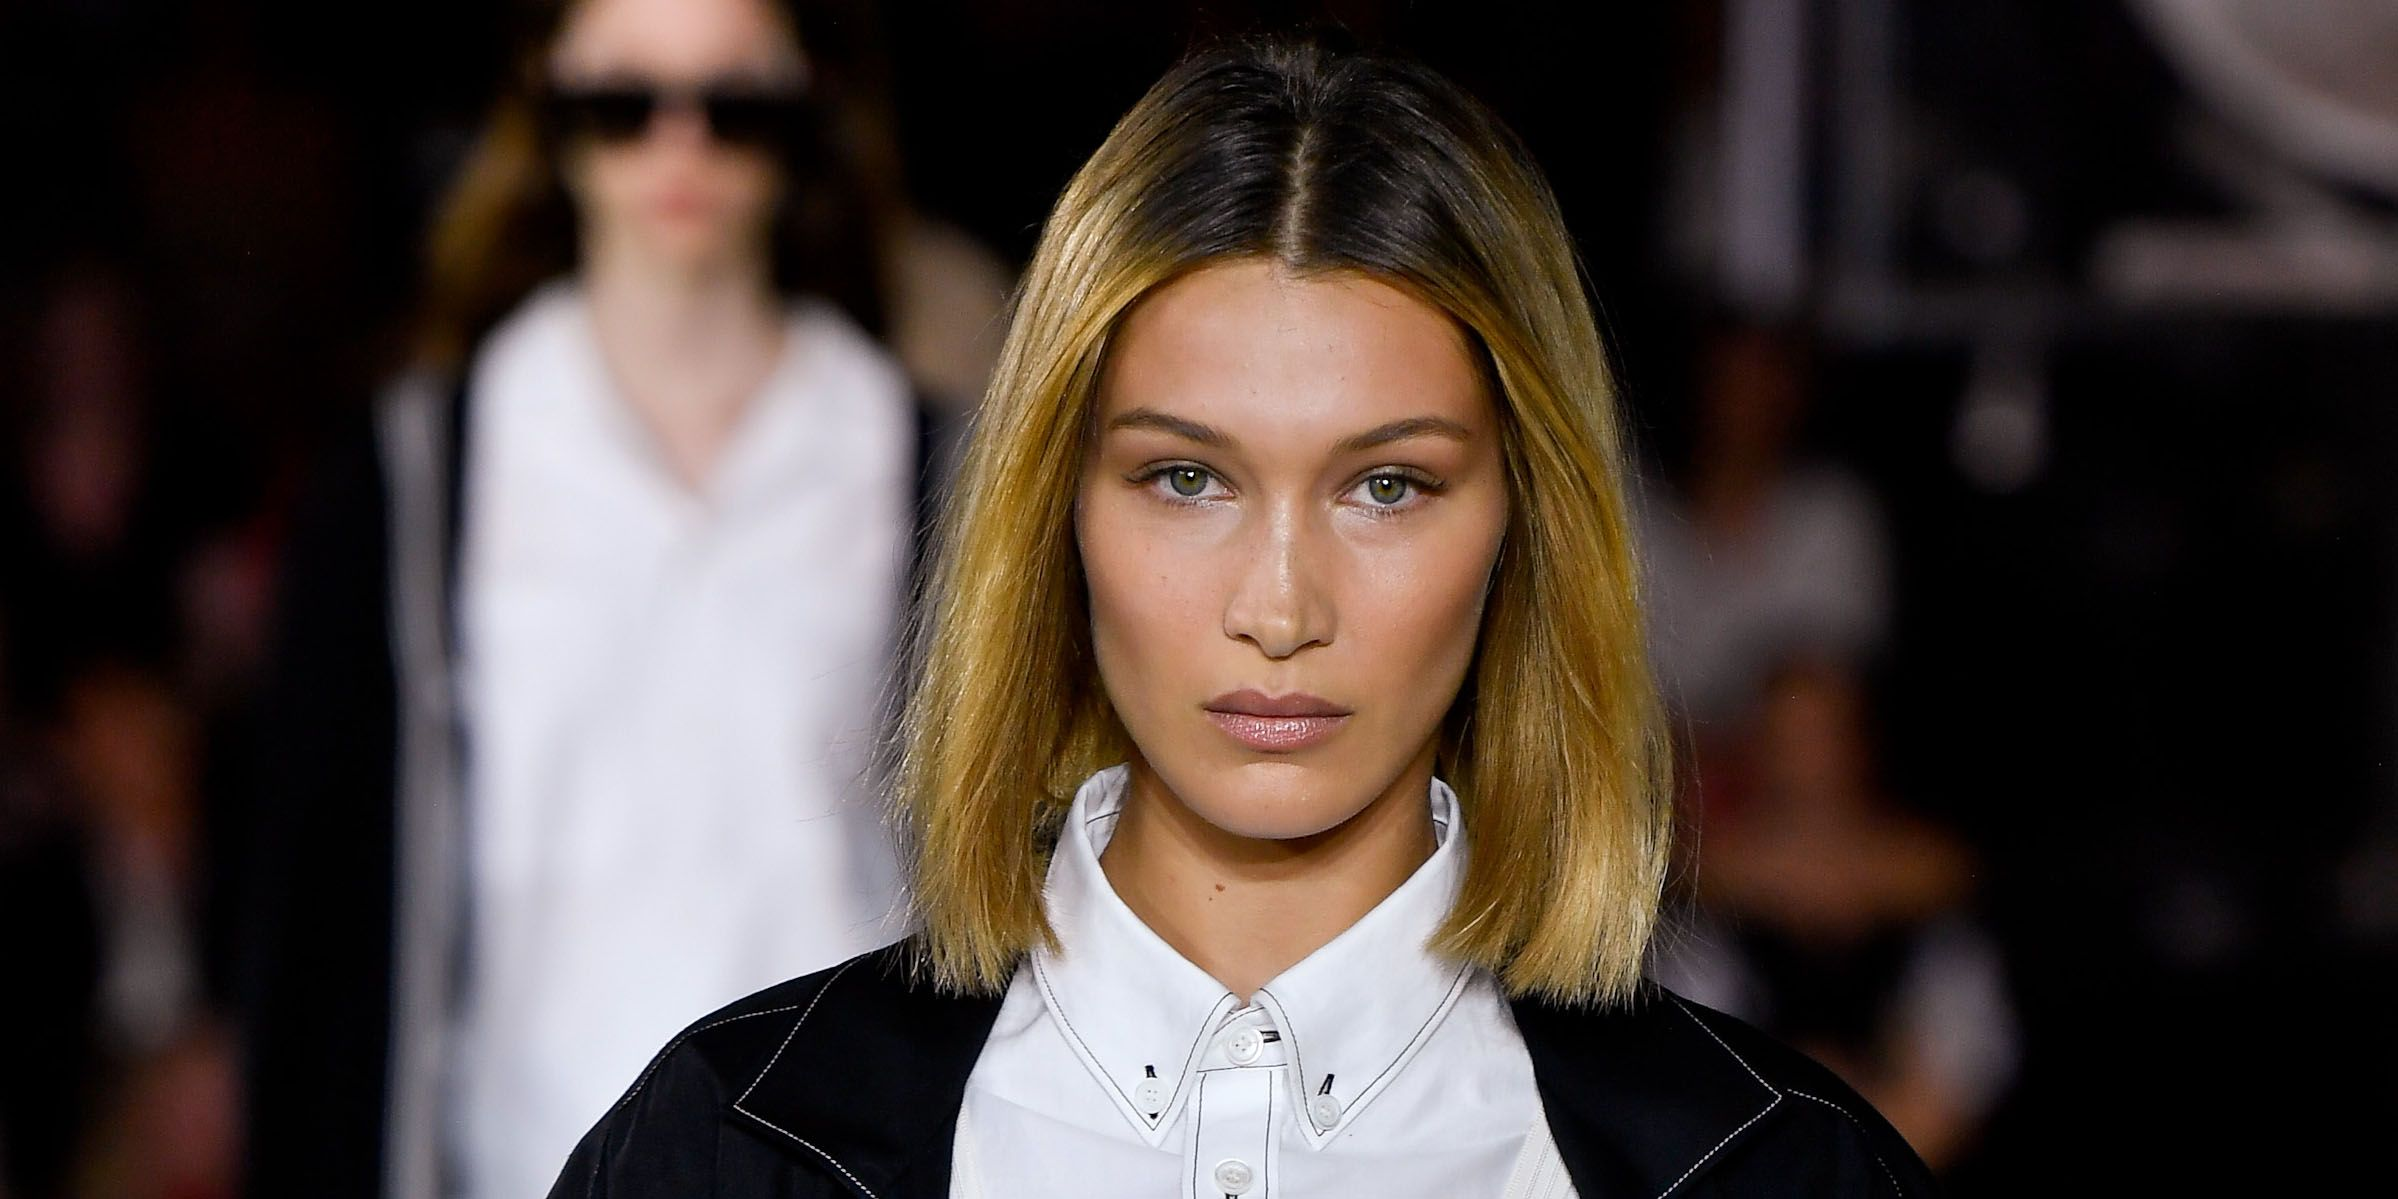 Bella Hadid debuted a blunt bob at Burberry